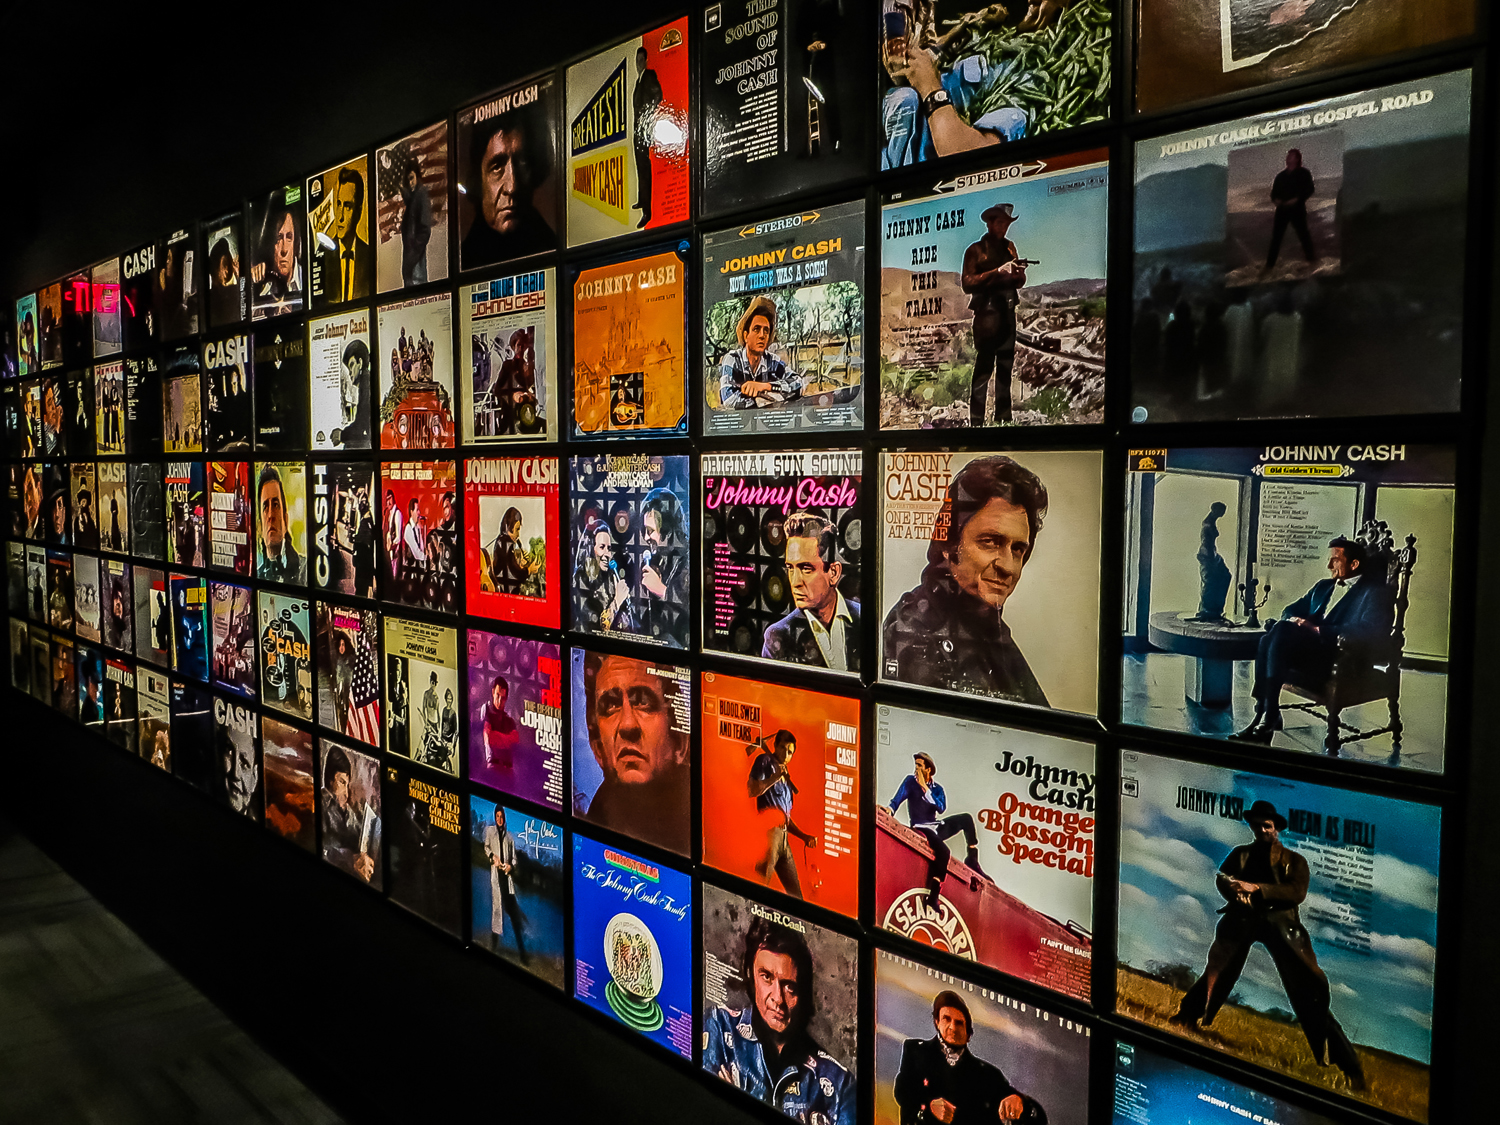 Johnny Cash Museum Wall of Albums